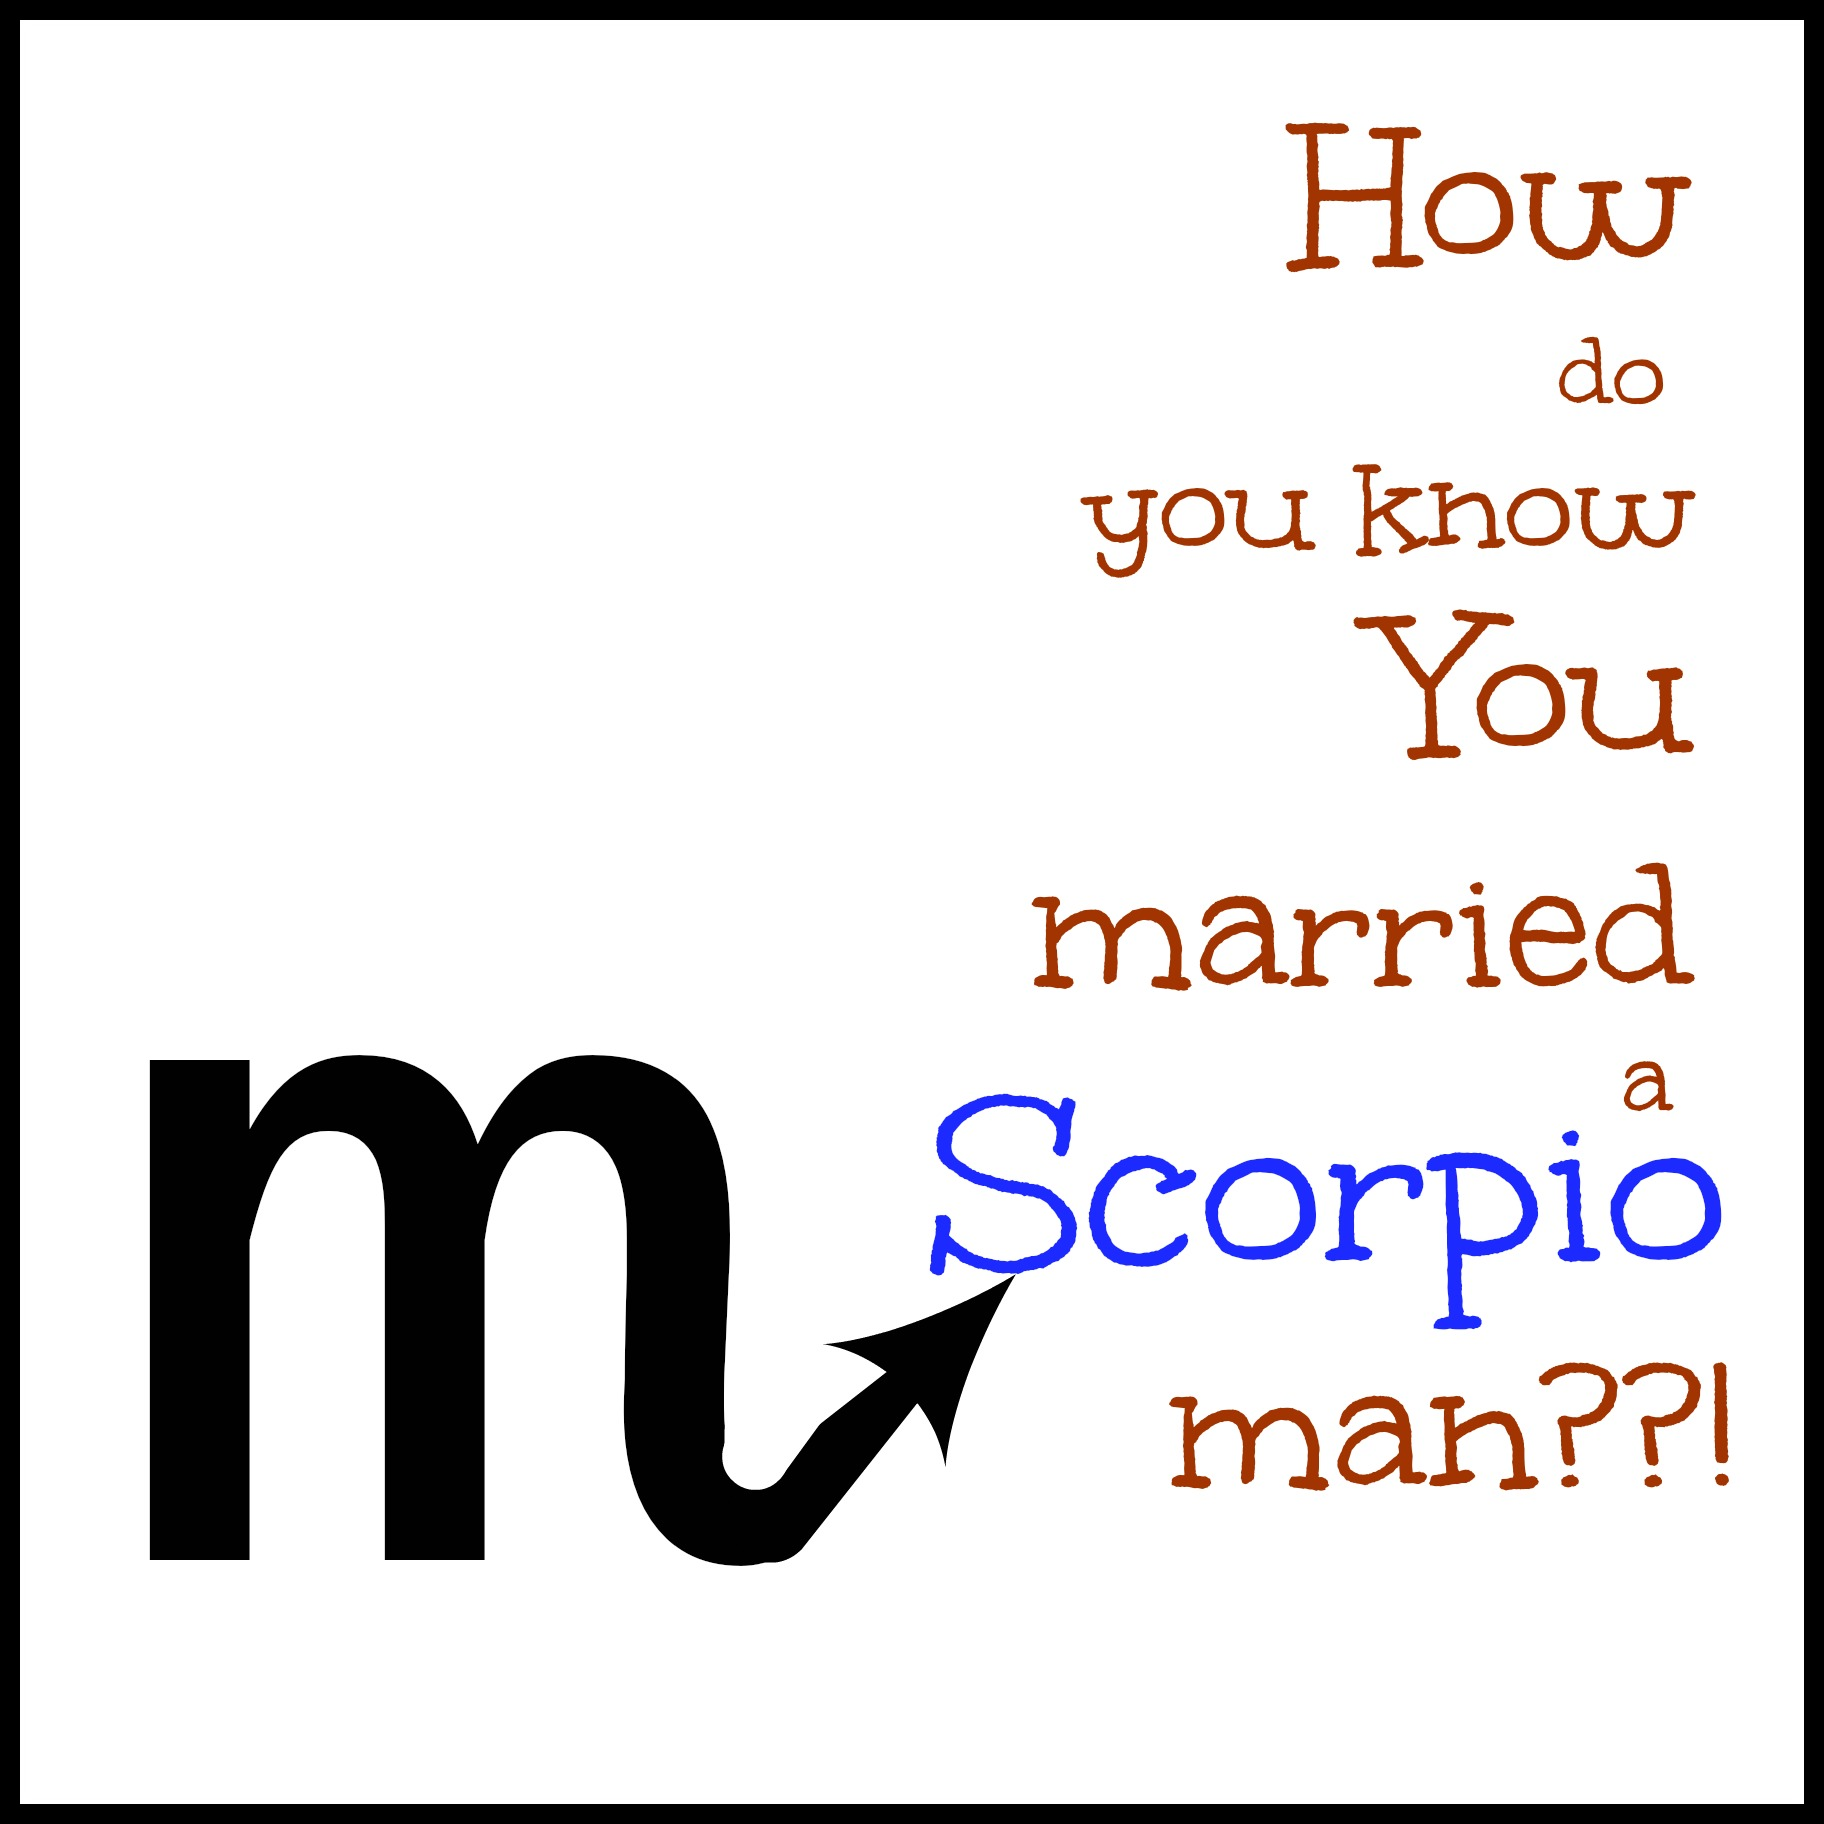 Can you trust a scorpio man